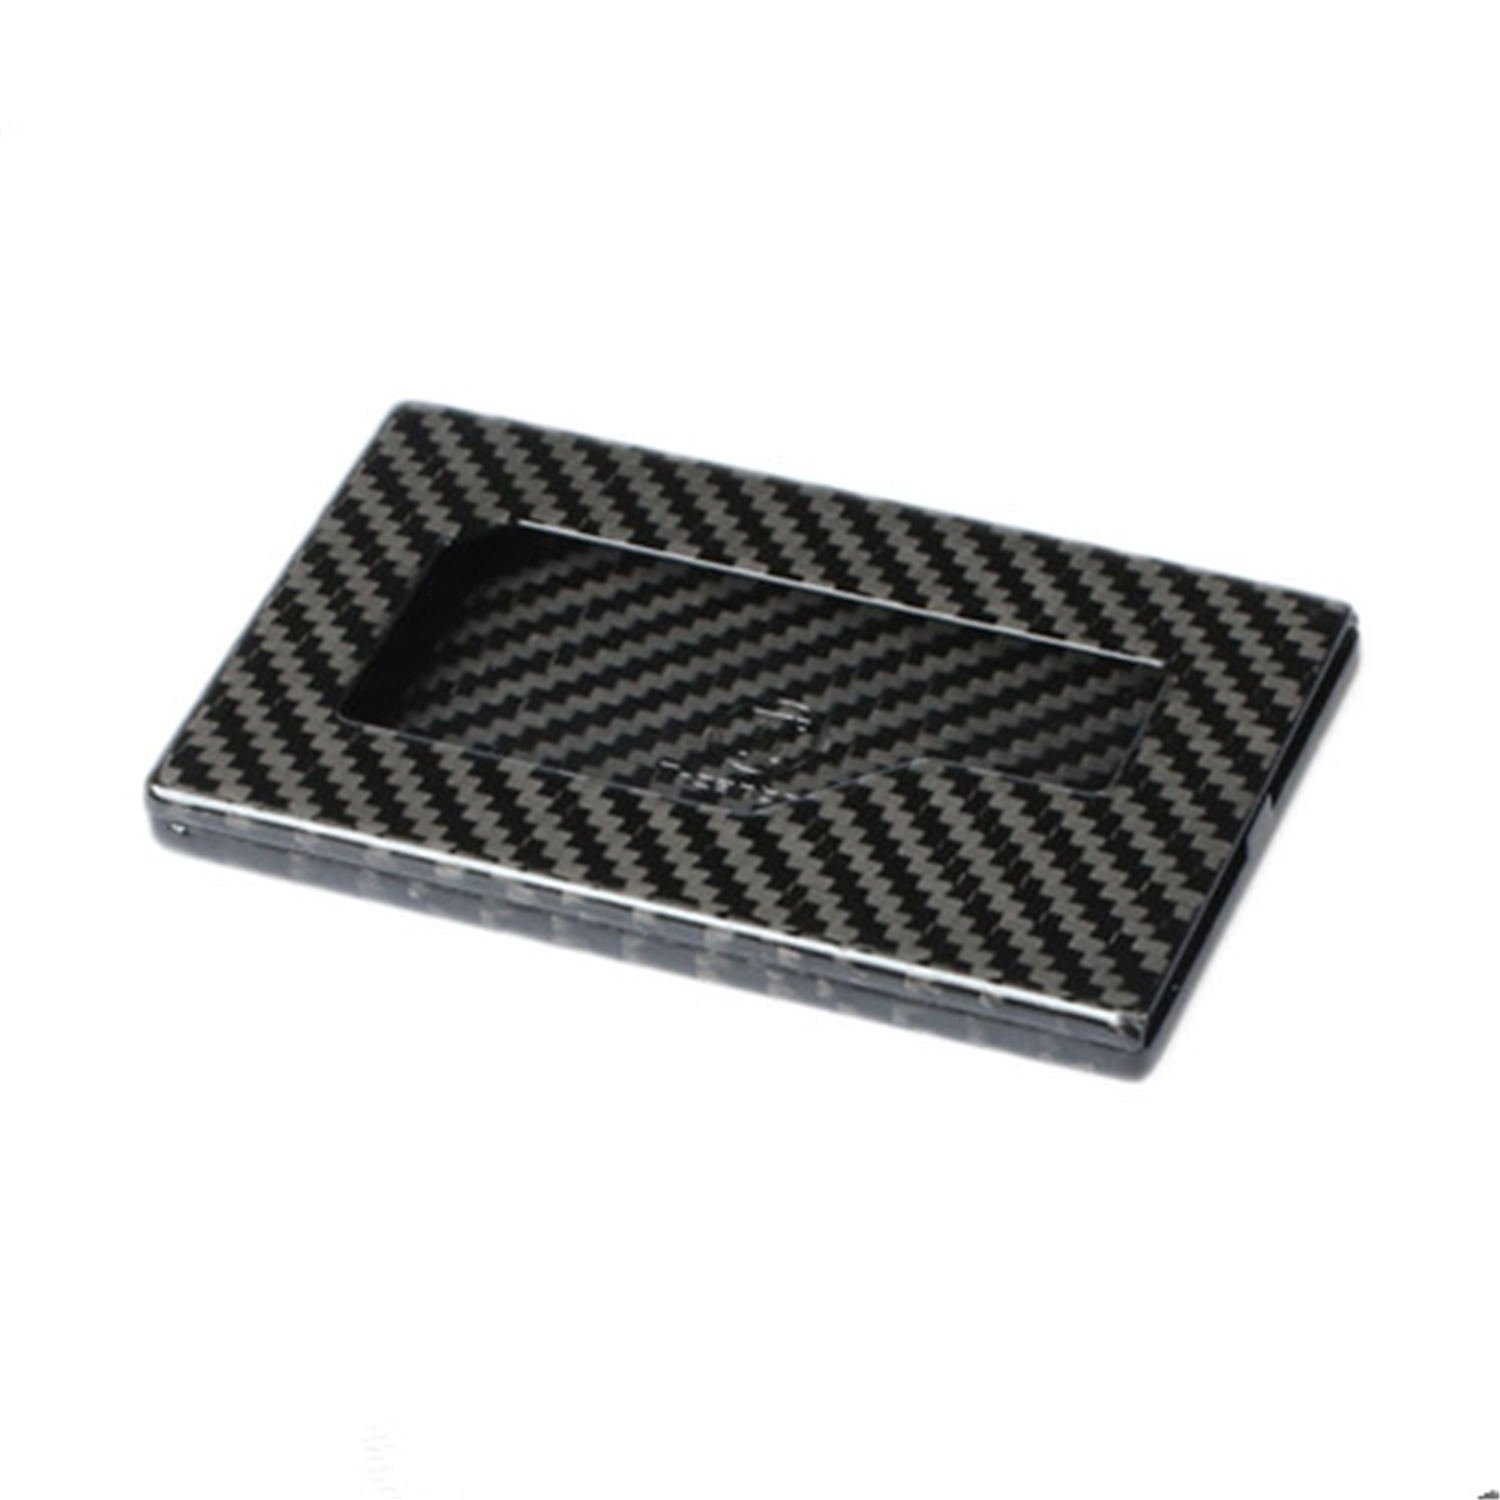 Real Genuine Carbon Fiber Business Card Holder, Professional Business Card Holder for Men Business Card Case Women Business Card Organizer Wallet Holder Case - Black - Glossy